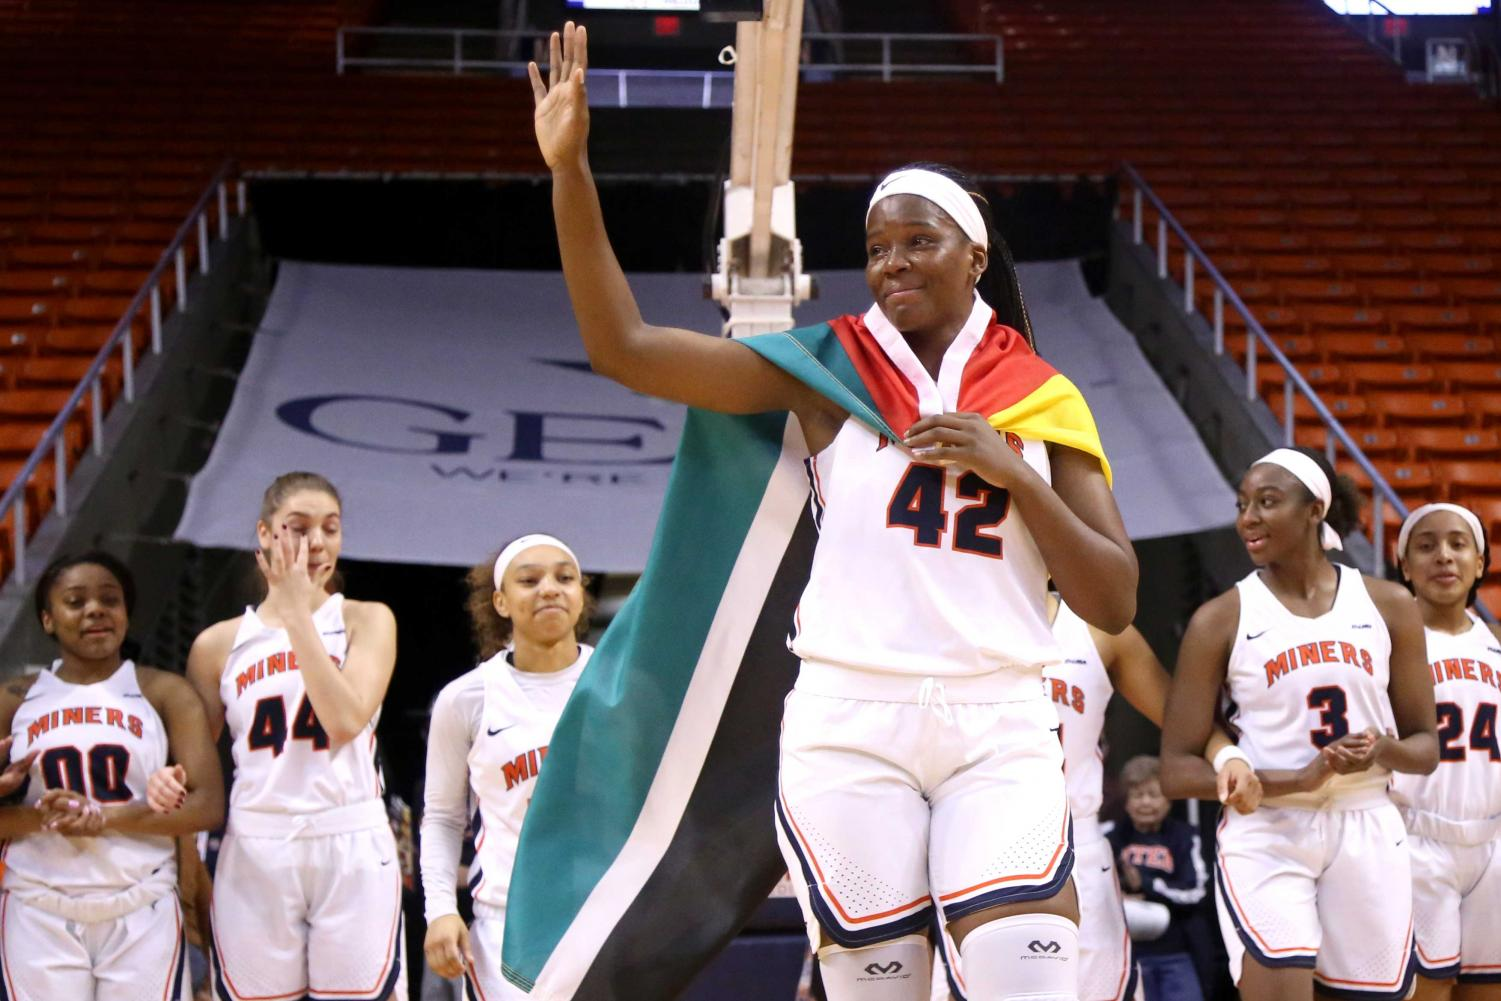 Senior+forward+Tamara+Seda+takes+in+the+pre+game+ovation+from+the+UTEP+faithful+center+court+on+Saturday%2C+March+3+at+the+Don+Haskins.+